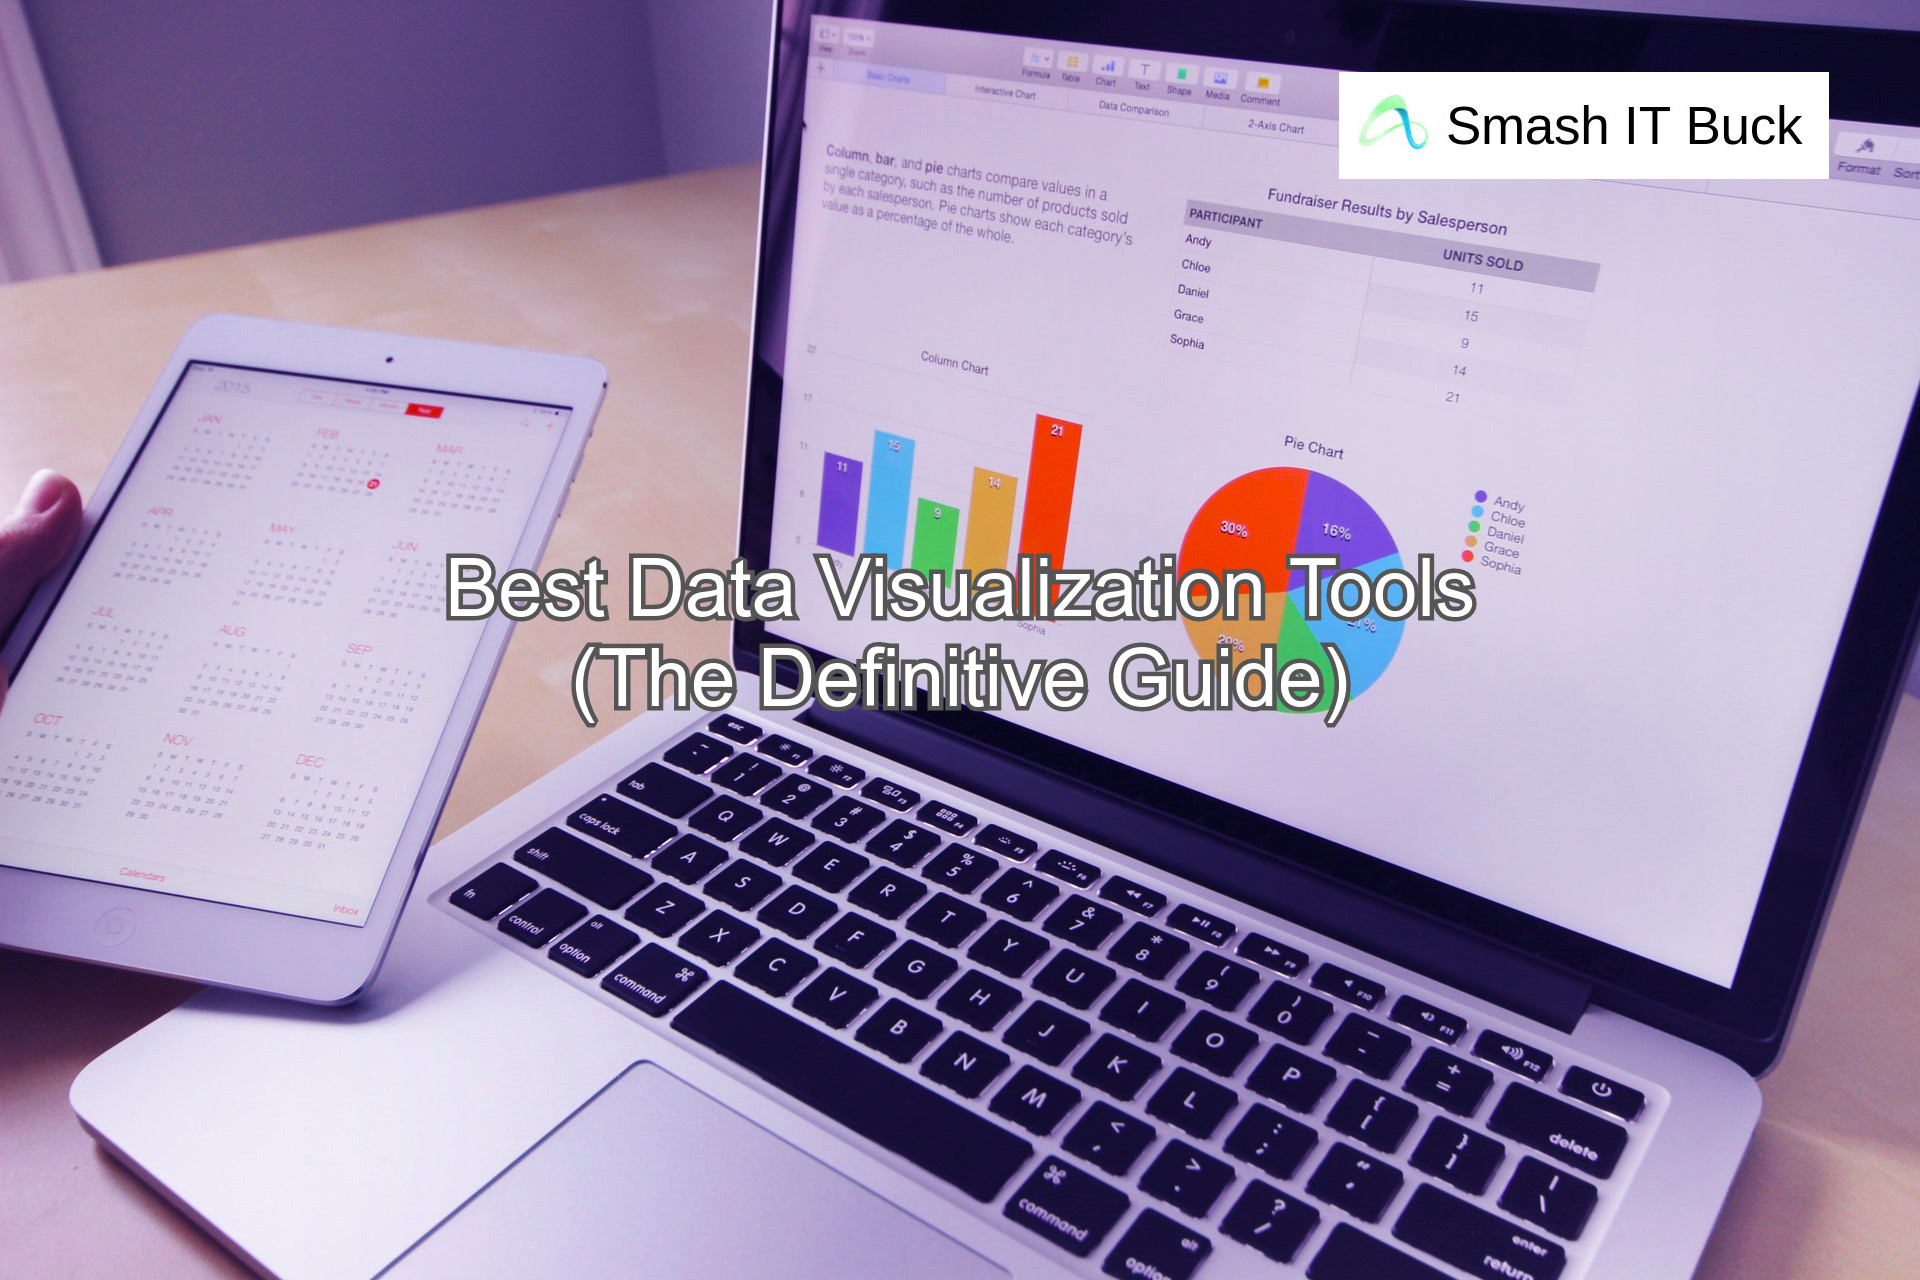 Best Data Visualization Tools of 2021